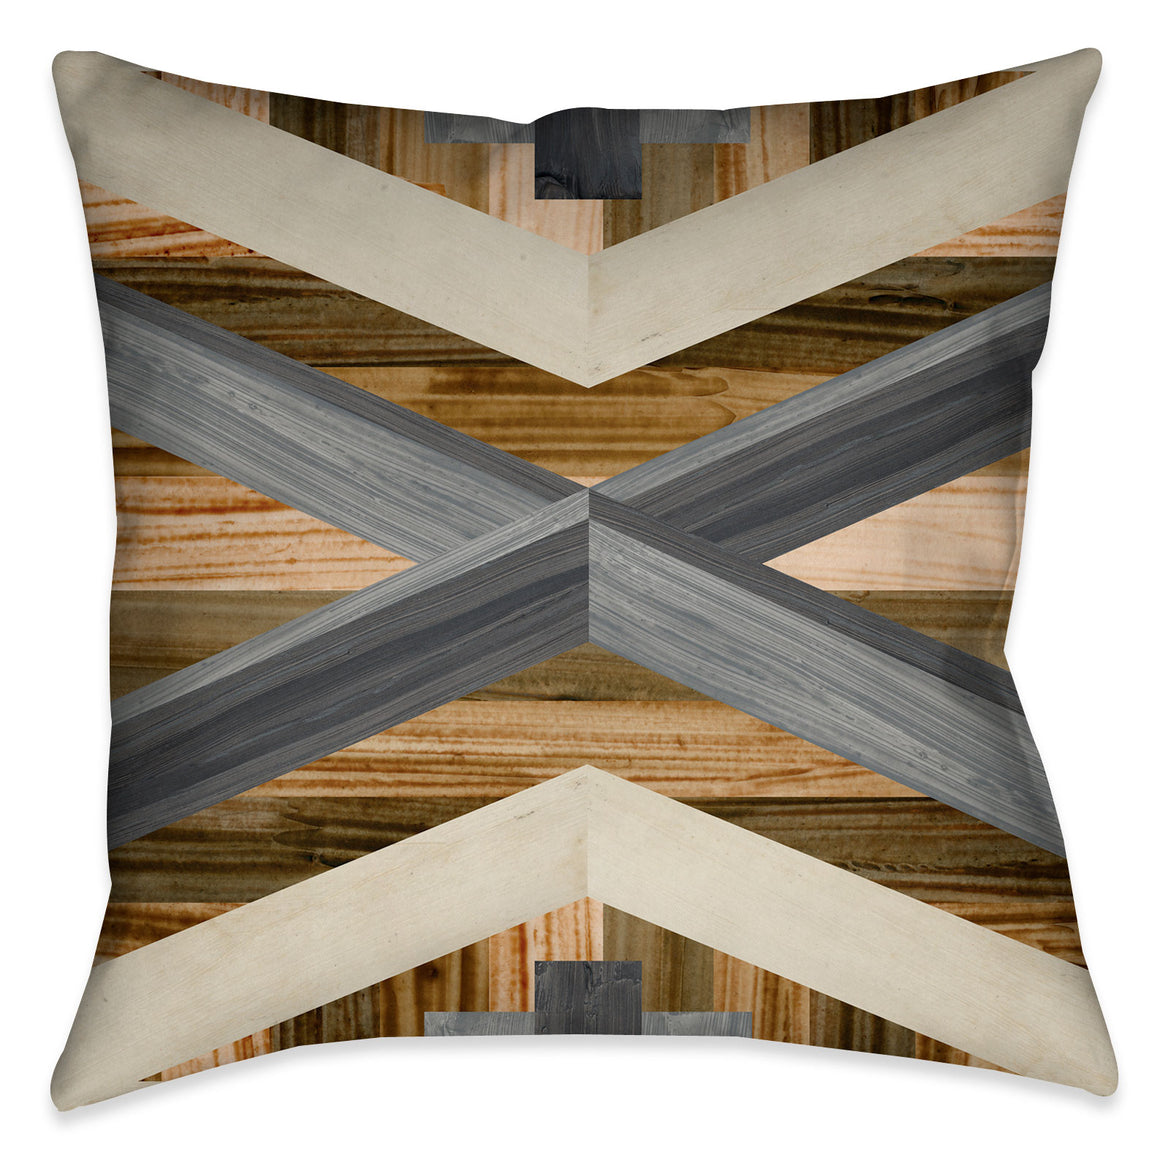 Geometric Inlay I Outdoor Decorative Pillow